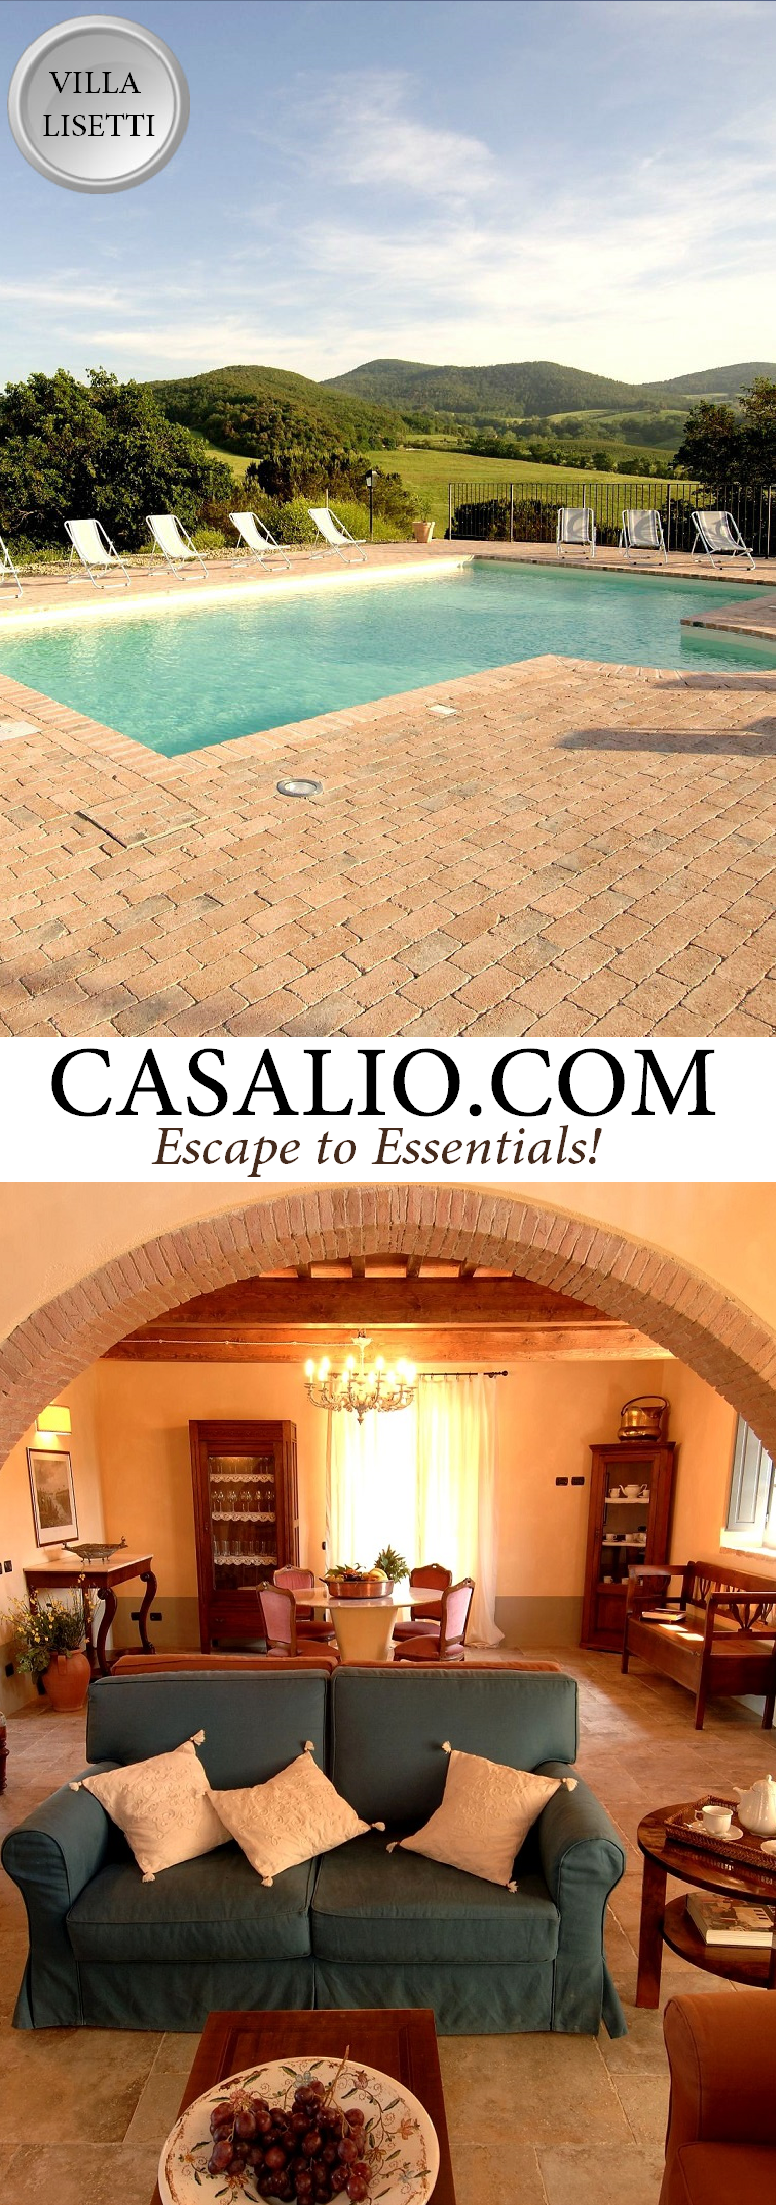 www.casalio.com || Villa Lisetti || Beautiful Villa located about 25 km distant from the sea, not so far from Cecina in Tuscany. It offers a magnificent panoramic view of the surrounding hills, a – if wanted also heated - swimming pool and all necessary comforts fot its 12 guests.#Luxury #Villa #Italy #Travel #LuxuryLife #LuxuryLifeStyle #LuxuryTravel #Tuscany #Pisa #Italy #Luxuryliving #villaLisetti (Pinned by #Casalio - www.casalio.com) Our travel blog - www.casaliotravel.com